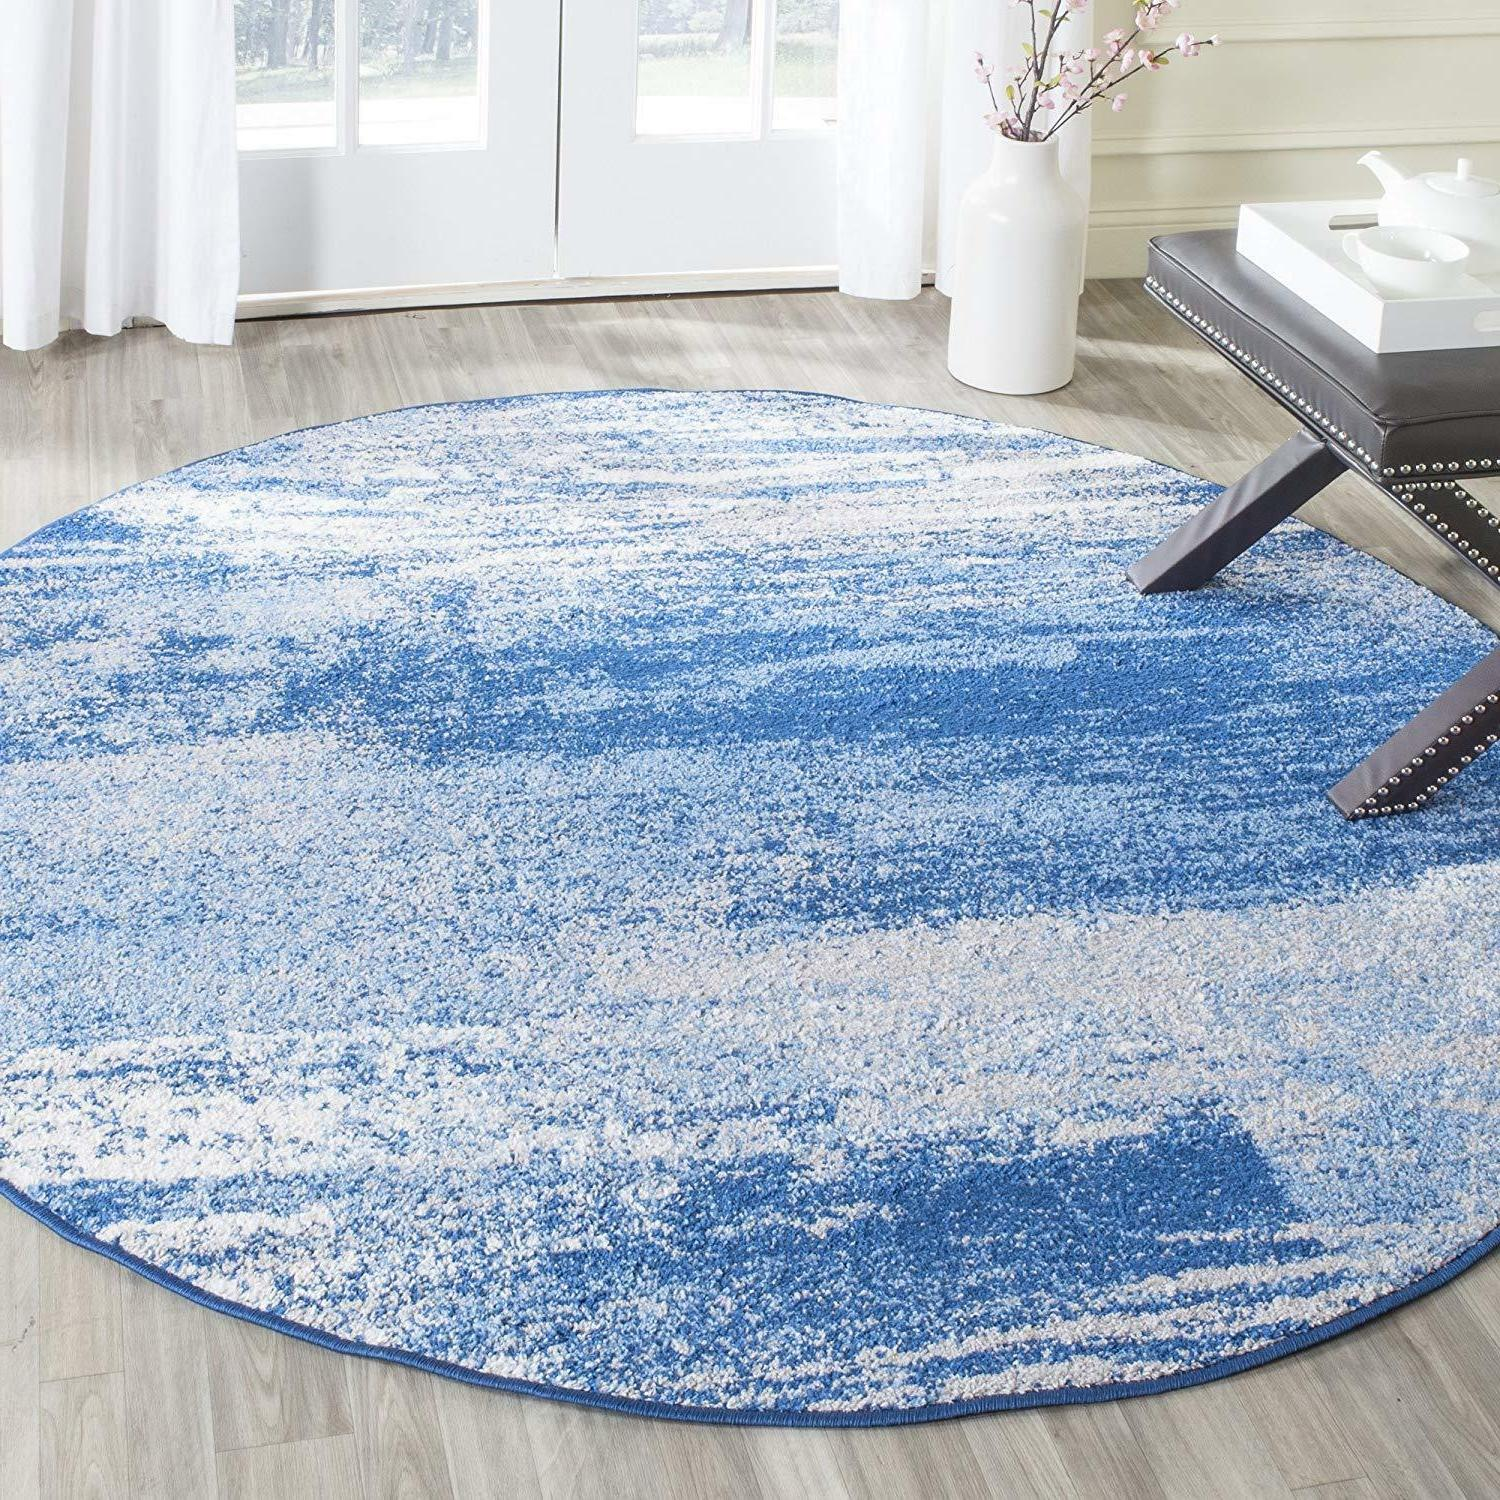 Safavieh Collection Silver and Modern Abstract Rug